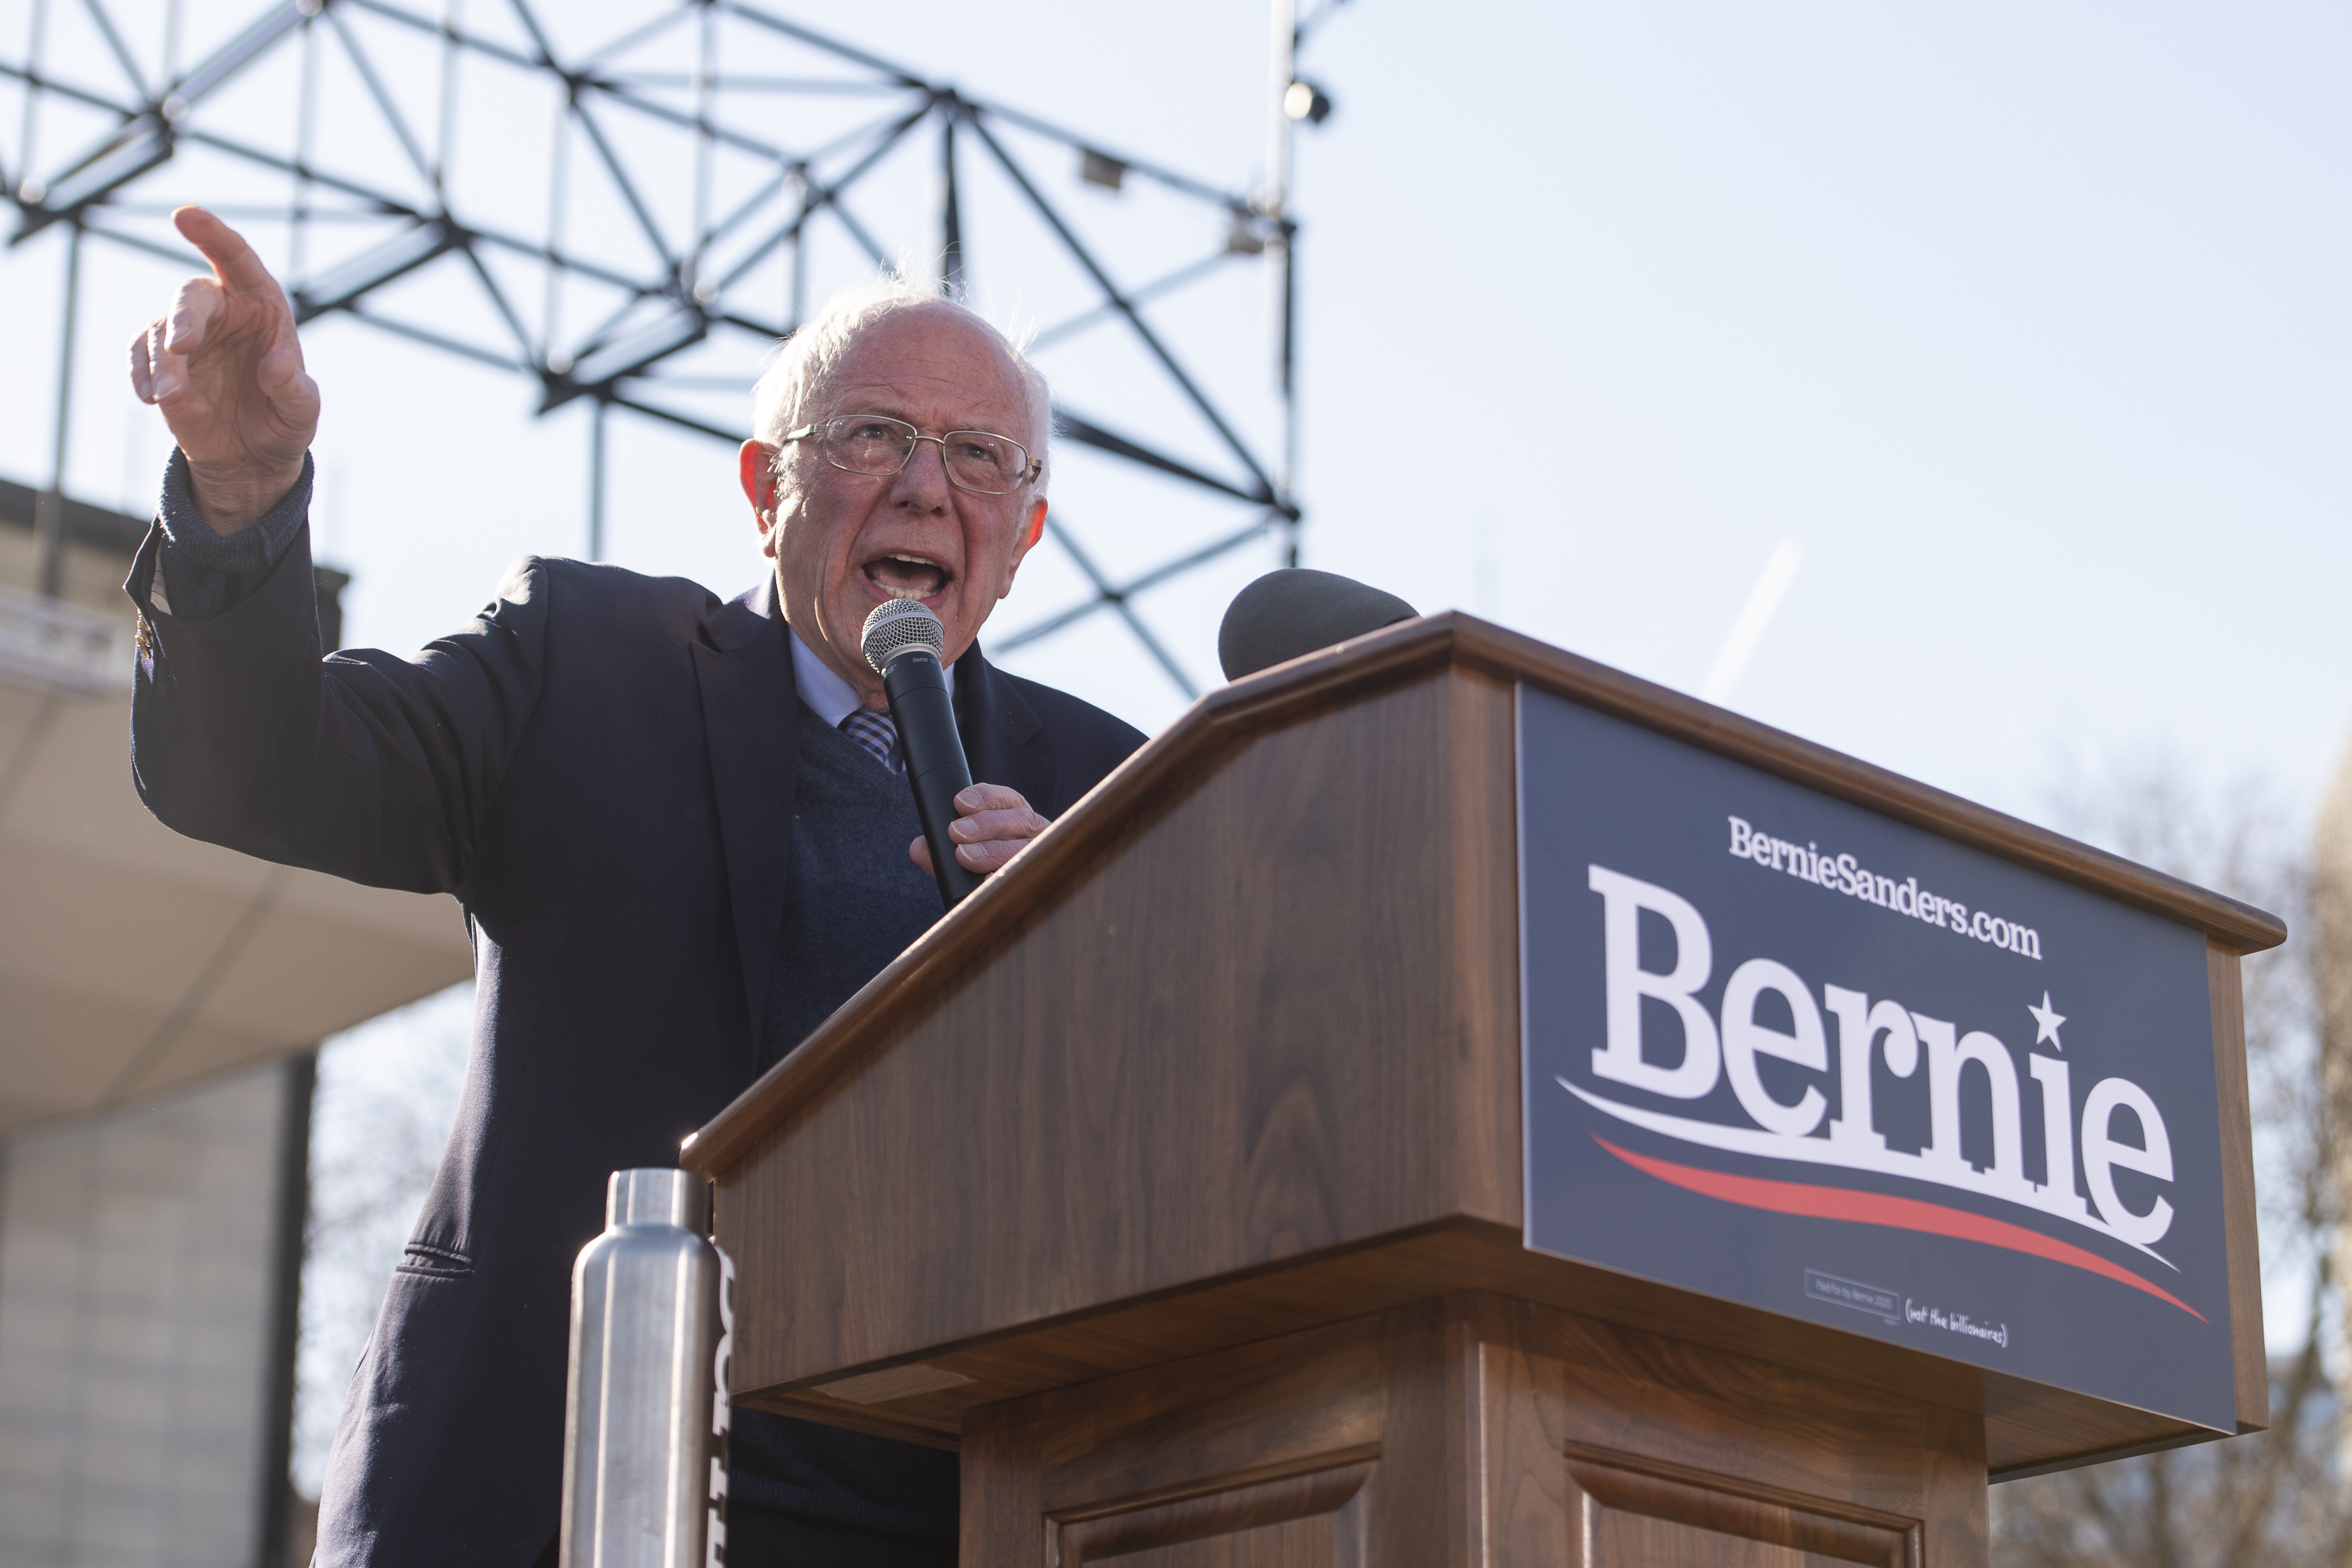 Then-presidential candidate Bernie Sanders speaks at Grant Park in March 2020. Sanders showed his support for striking Cook County workers Saturday.